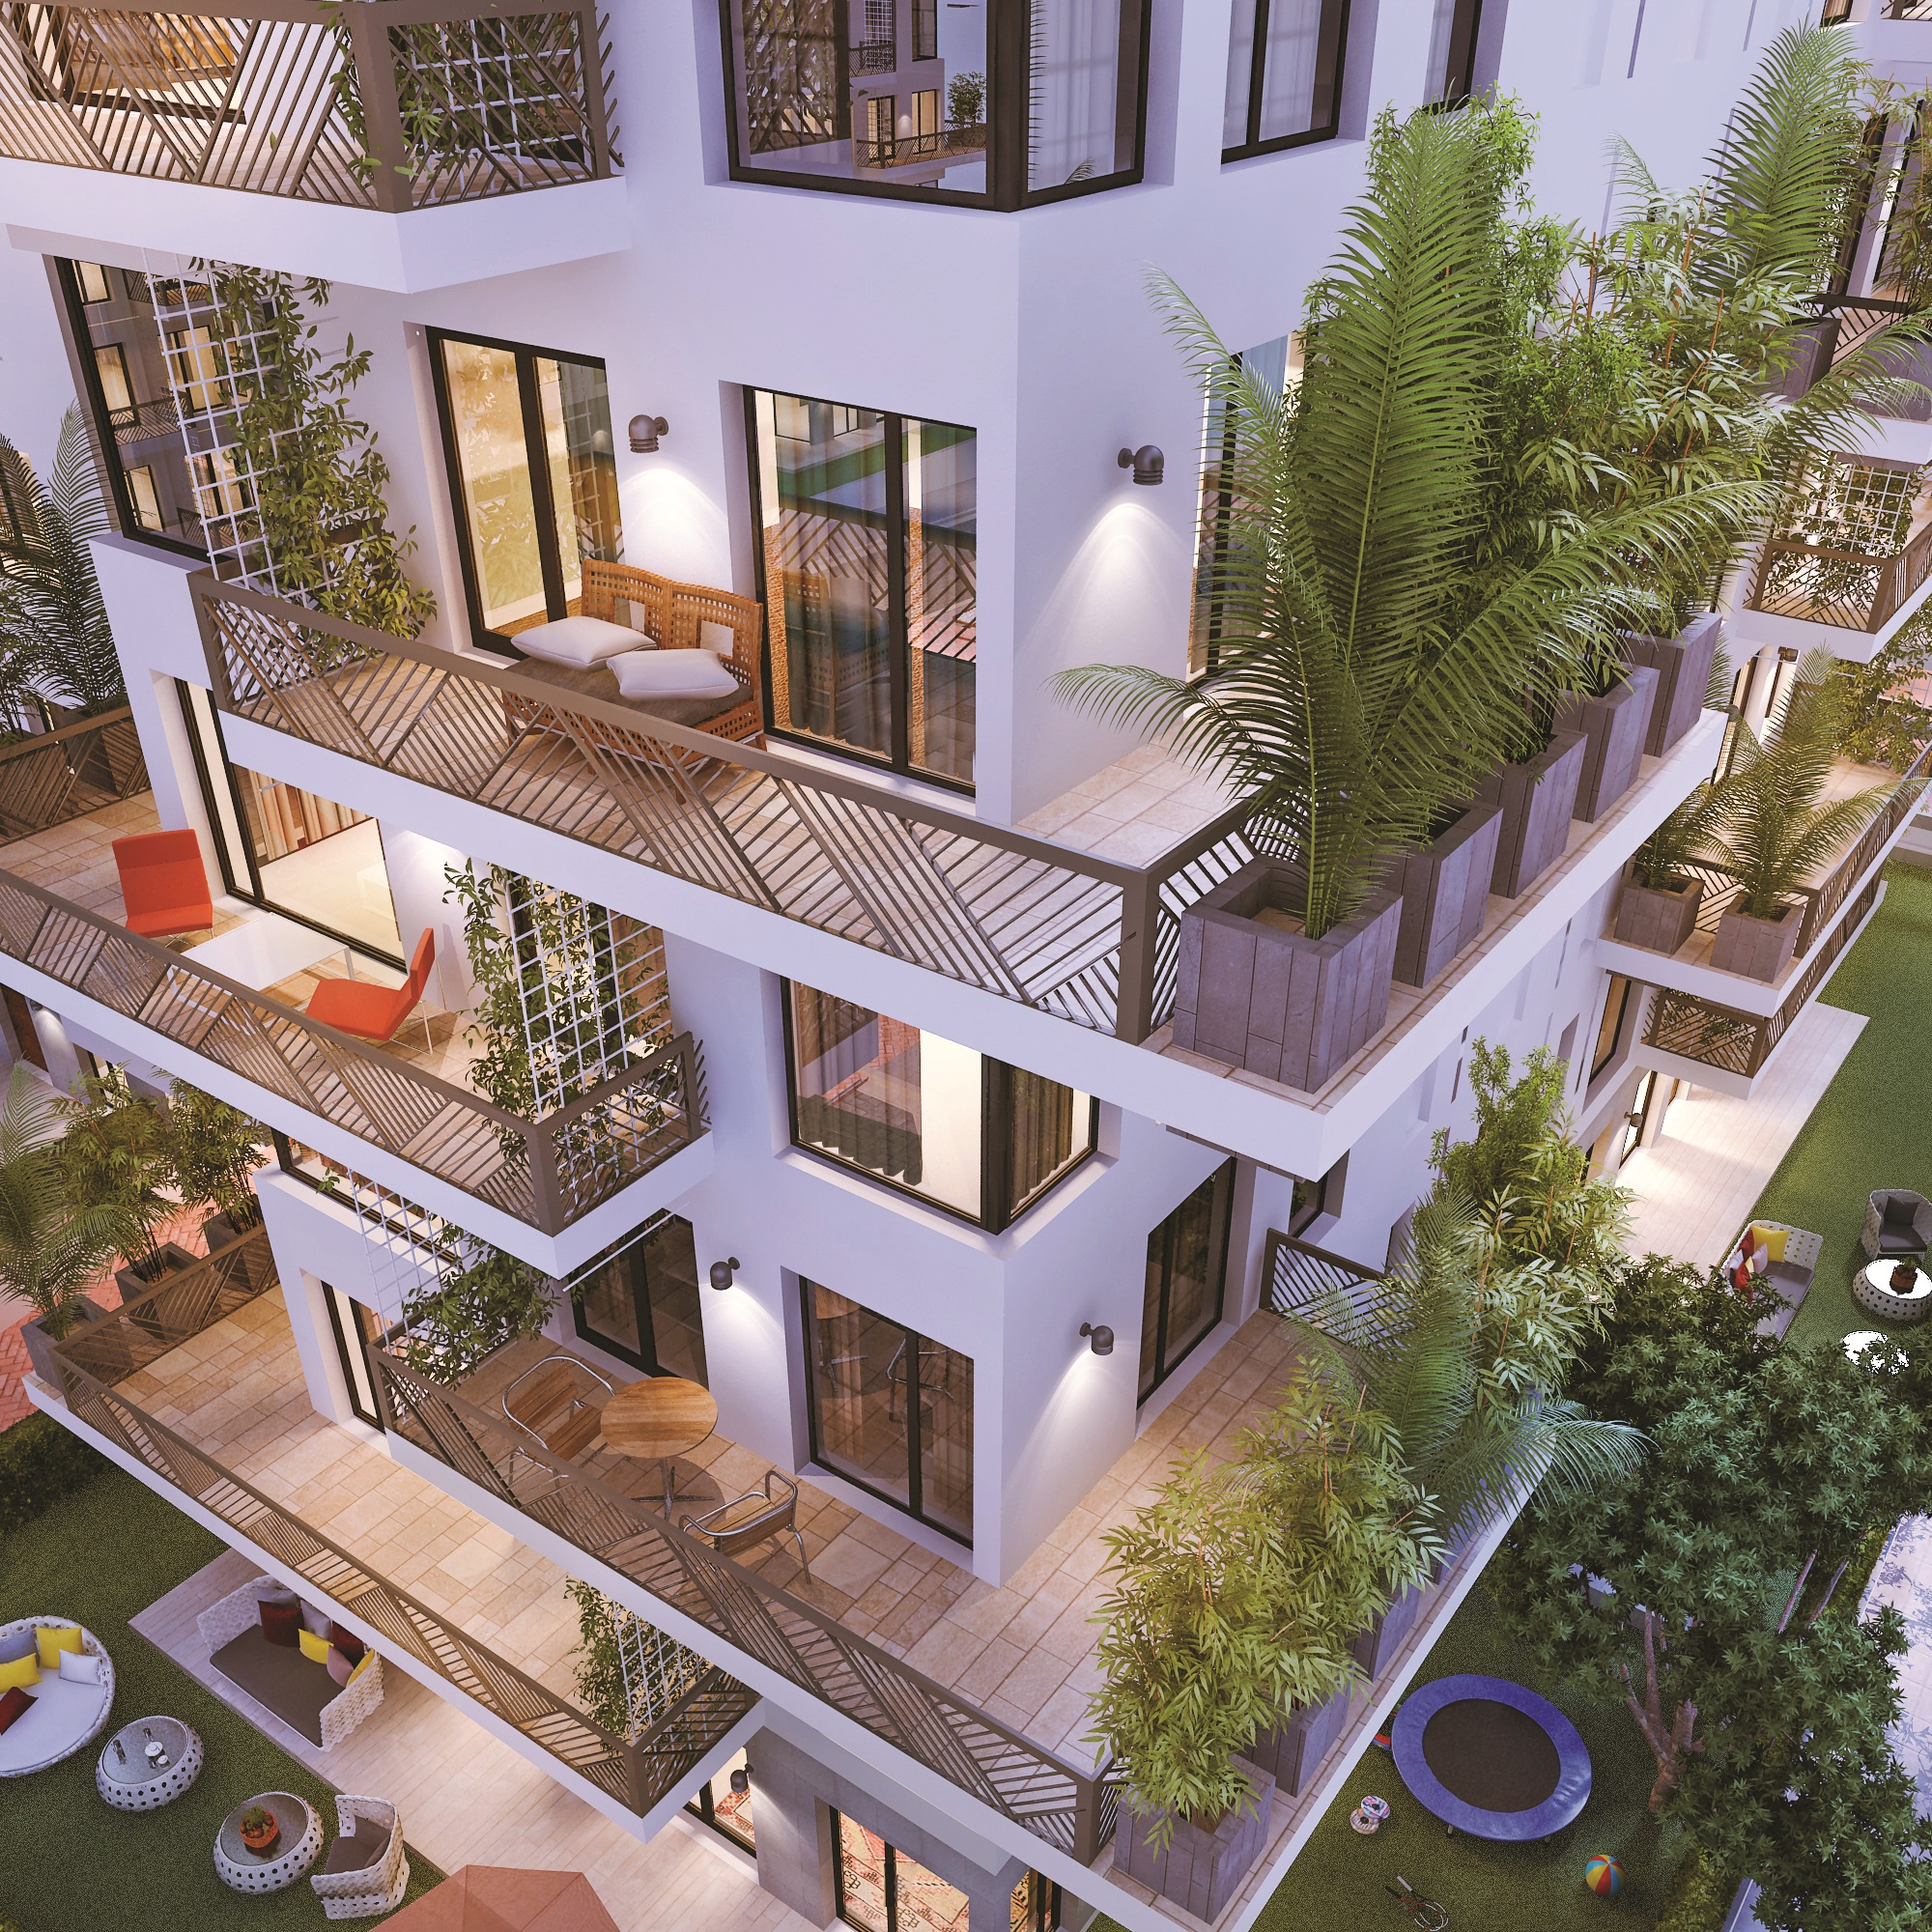 662-apartment-3-bedrooms-family-living